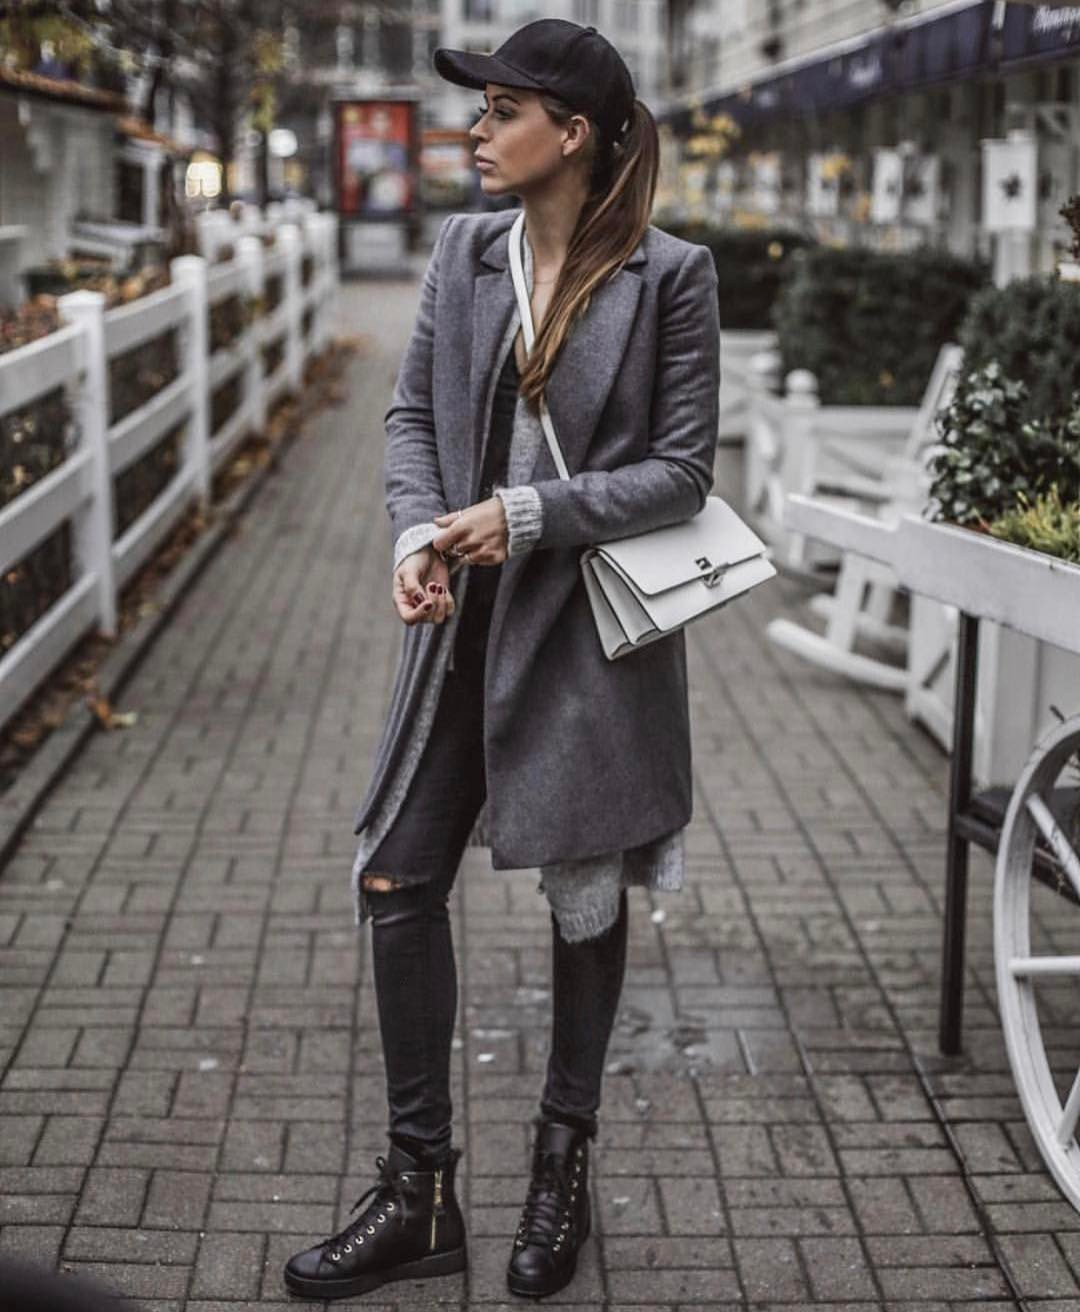 Charcoal Baseball Cap, Grey Coat And Grey Skinny Jeans: Monochrome OOTD 2020